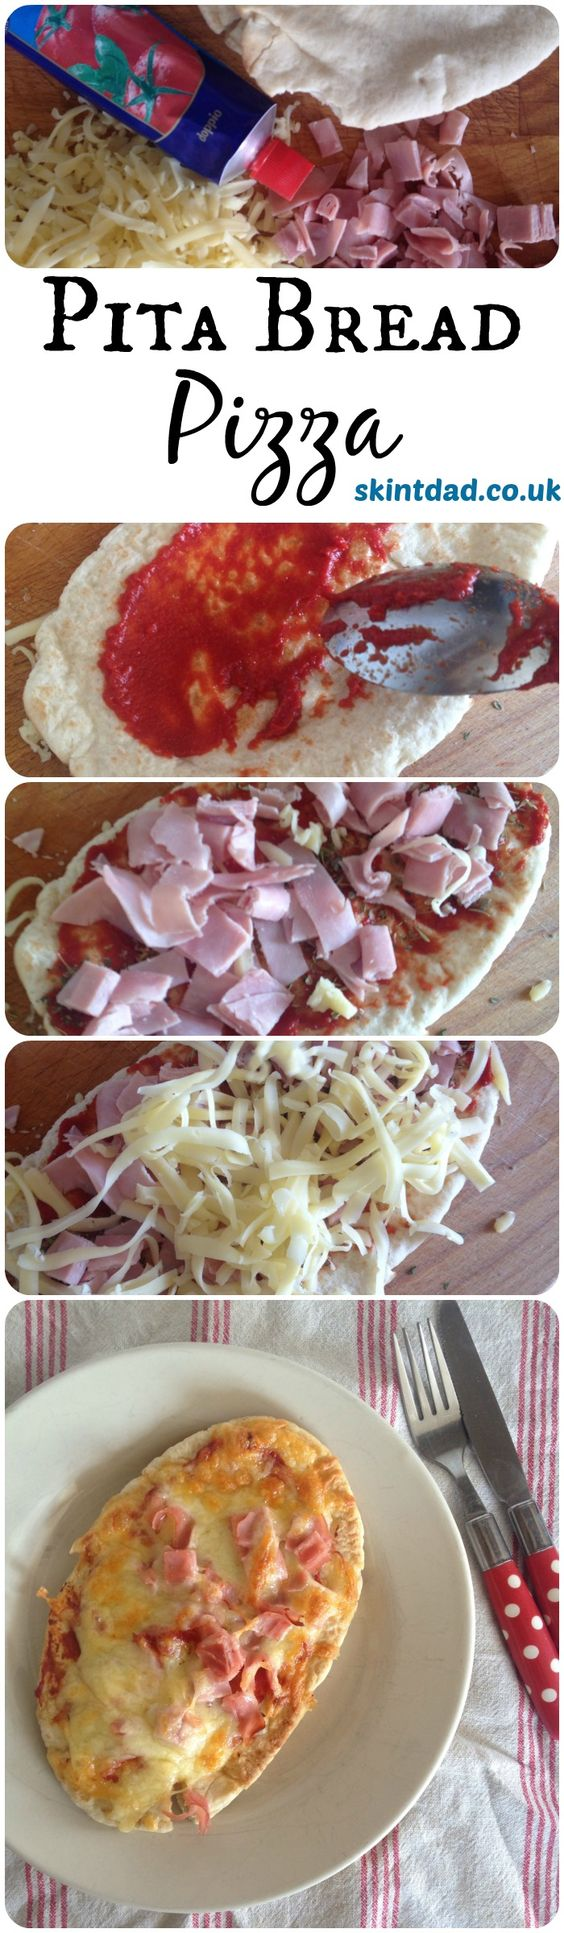 Pita Bread Pizza | A quick, easy and cheap lunchtime meal that kids can help to prepare | The Skint Dad Blog